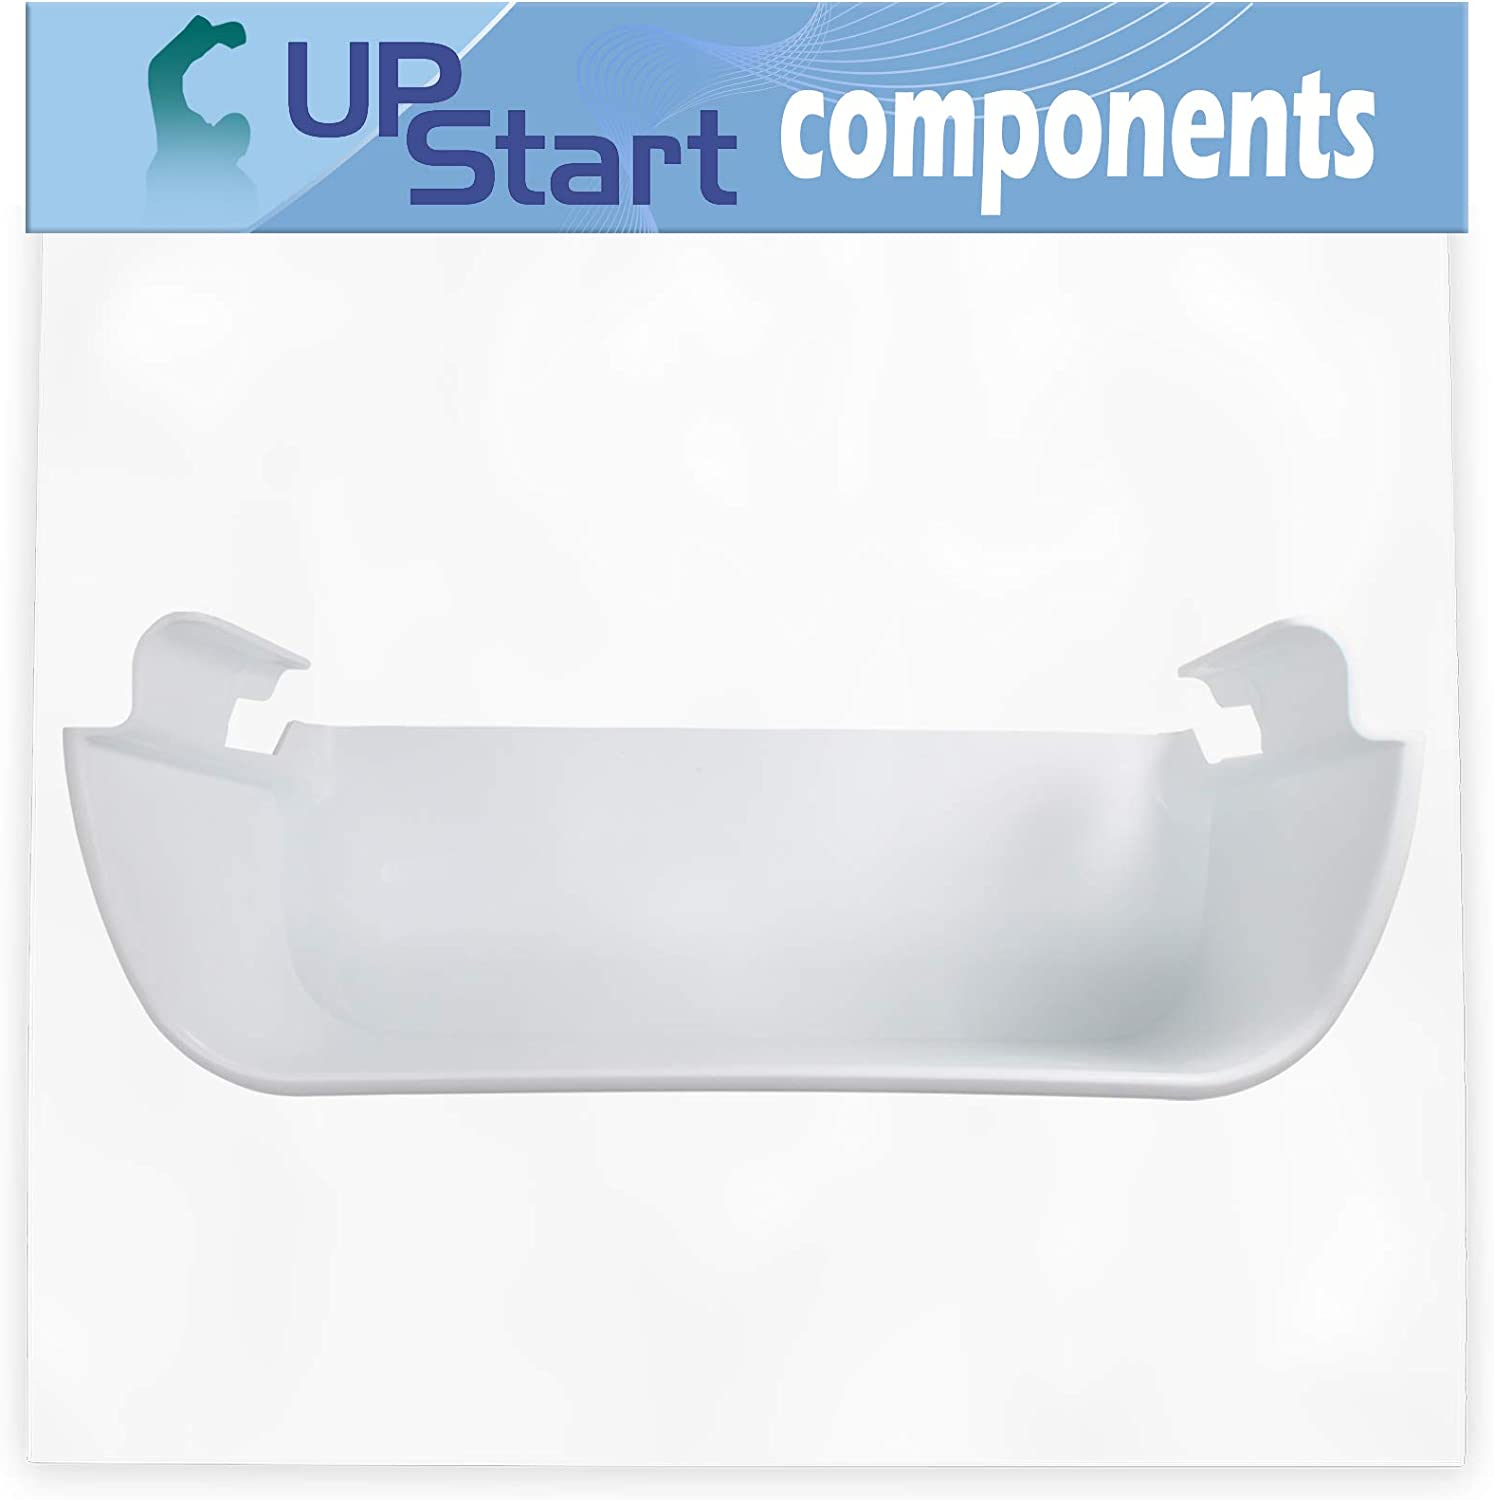 240363701 Refrigerator Door Shelf for Bin Now free shipping Large-scale sale Frigidaire Replacement